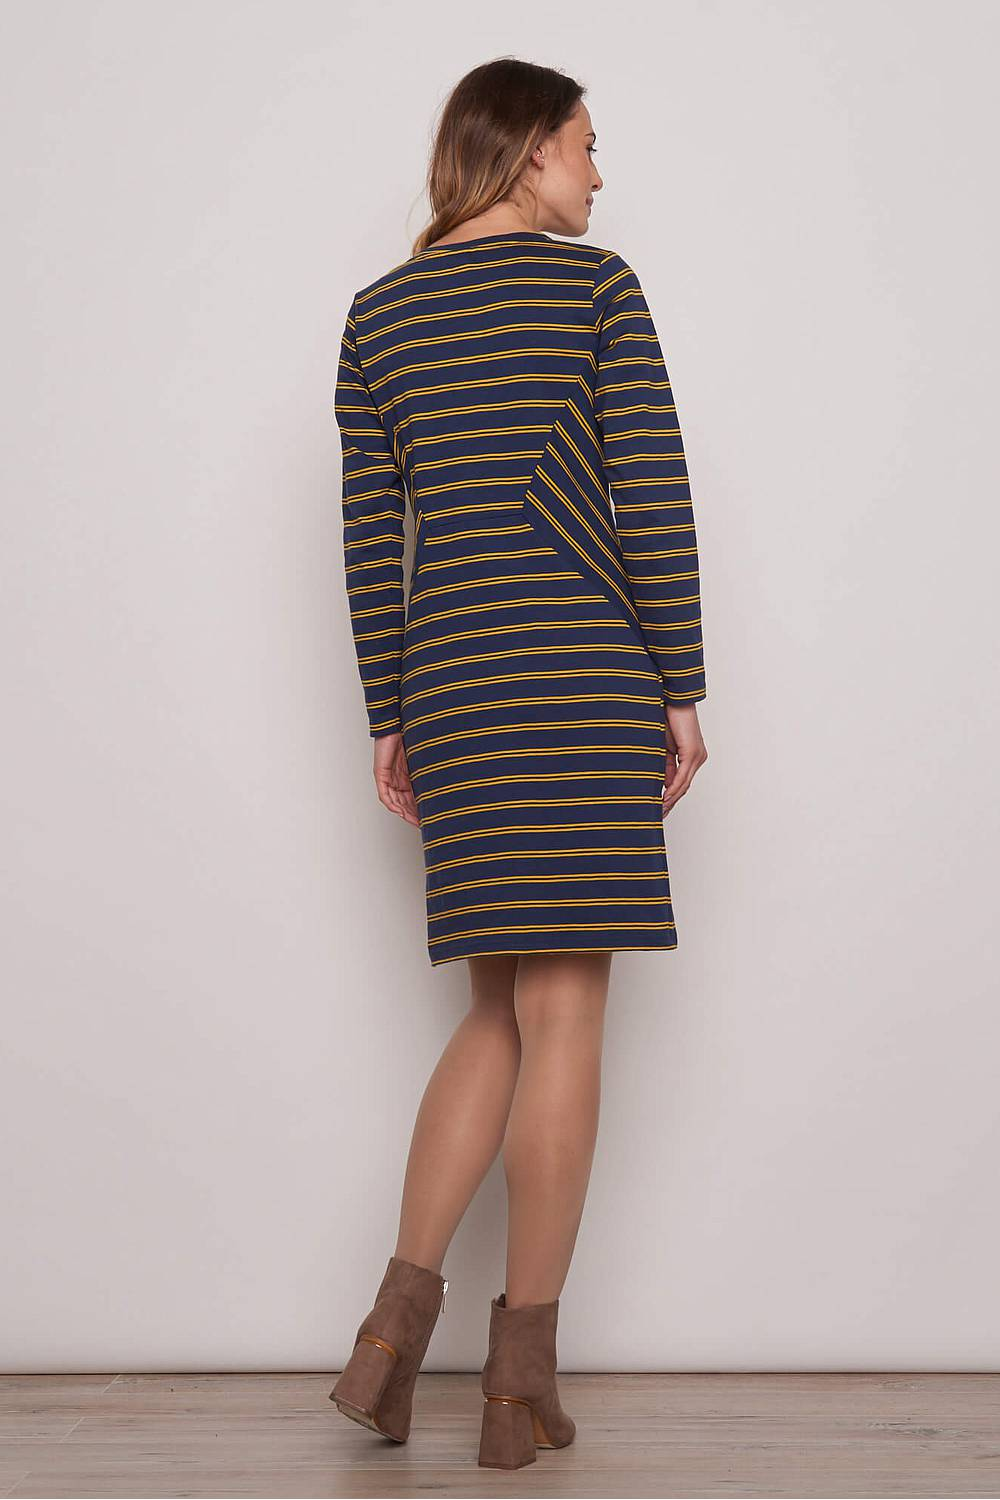 Heavy Slub Kleid ALBA navy stripes